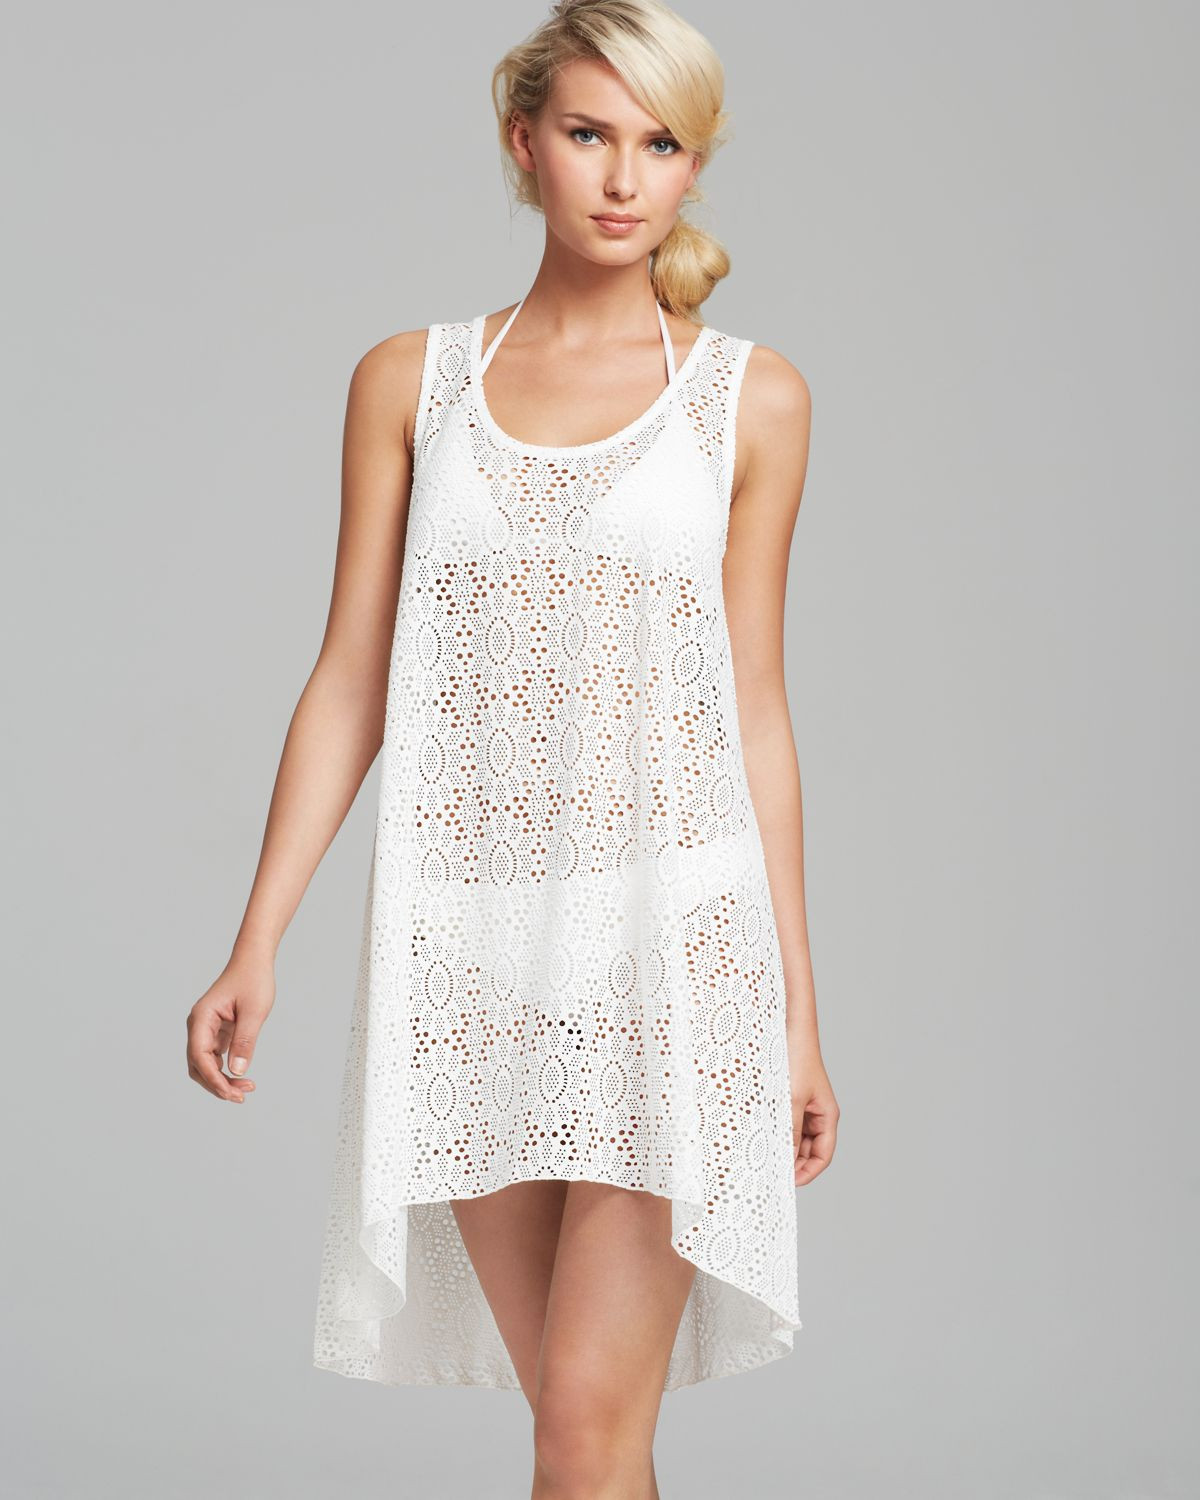 Awesome Gottex Tutti Frutti Crochet Cover Up Tank Dress In White White Crochet Cover Ups Of Charming 44 Pics White Crochet Cover Ups